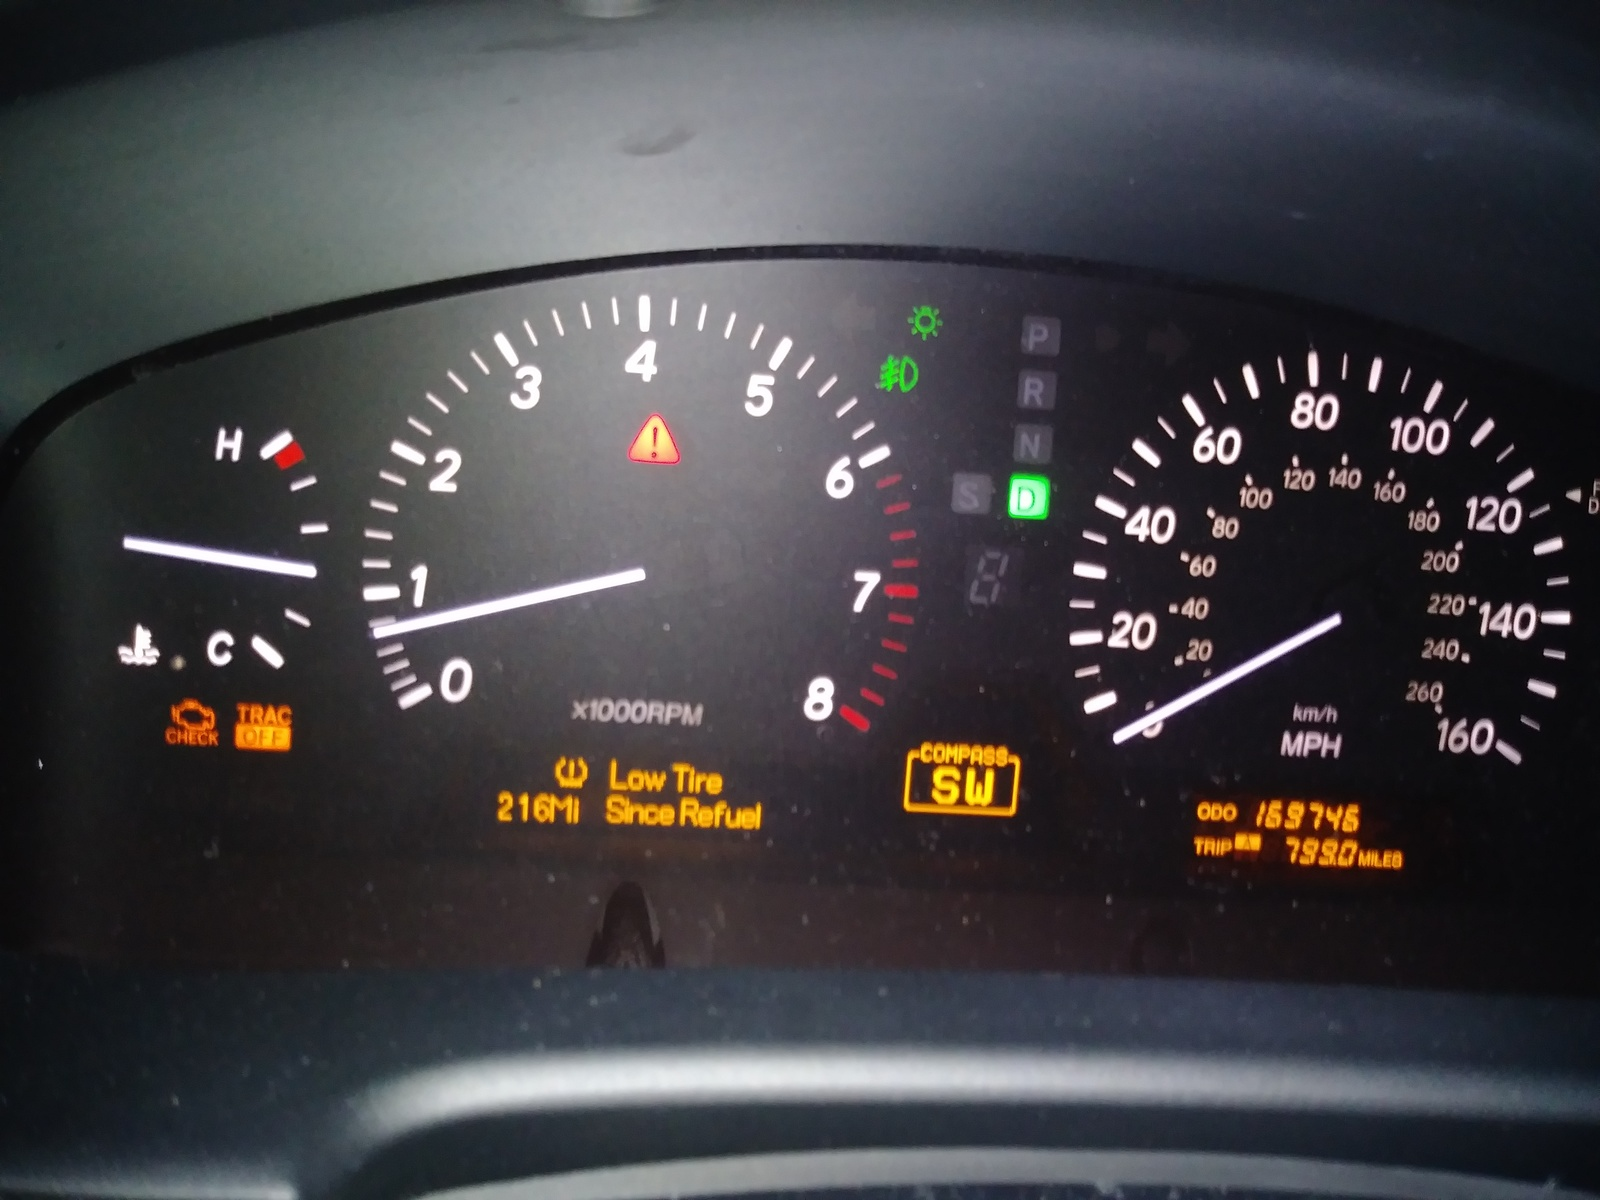 I have a lexus 430 , 2004 havinv issues related to vsc and check engine  sign also car is shaking so much please help